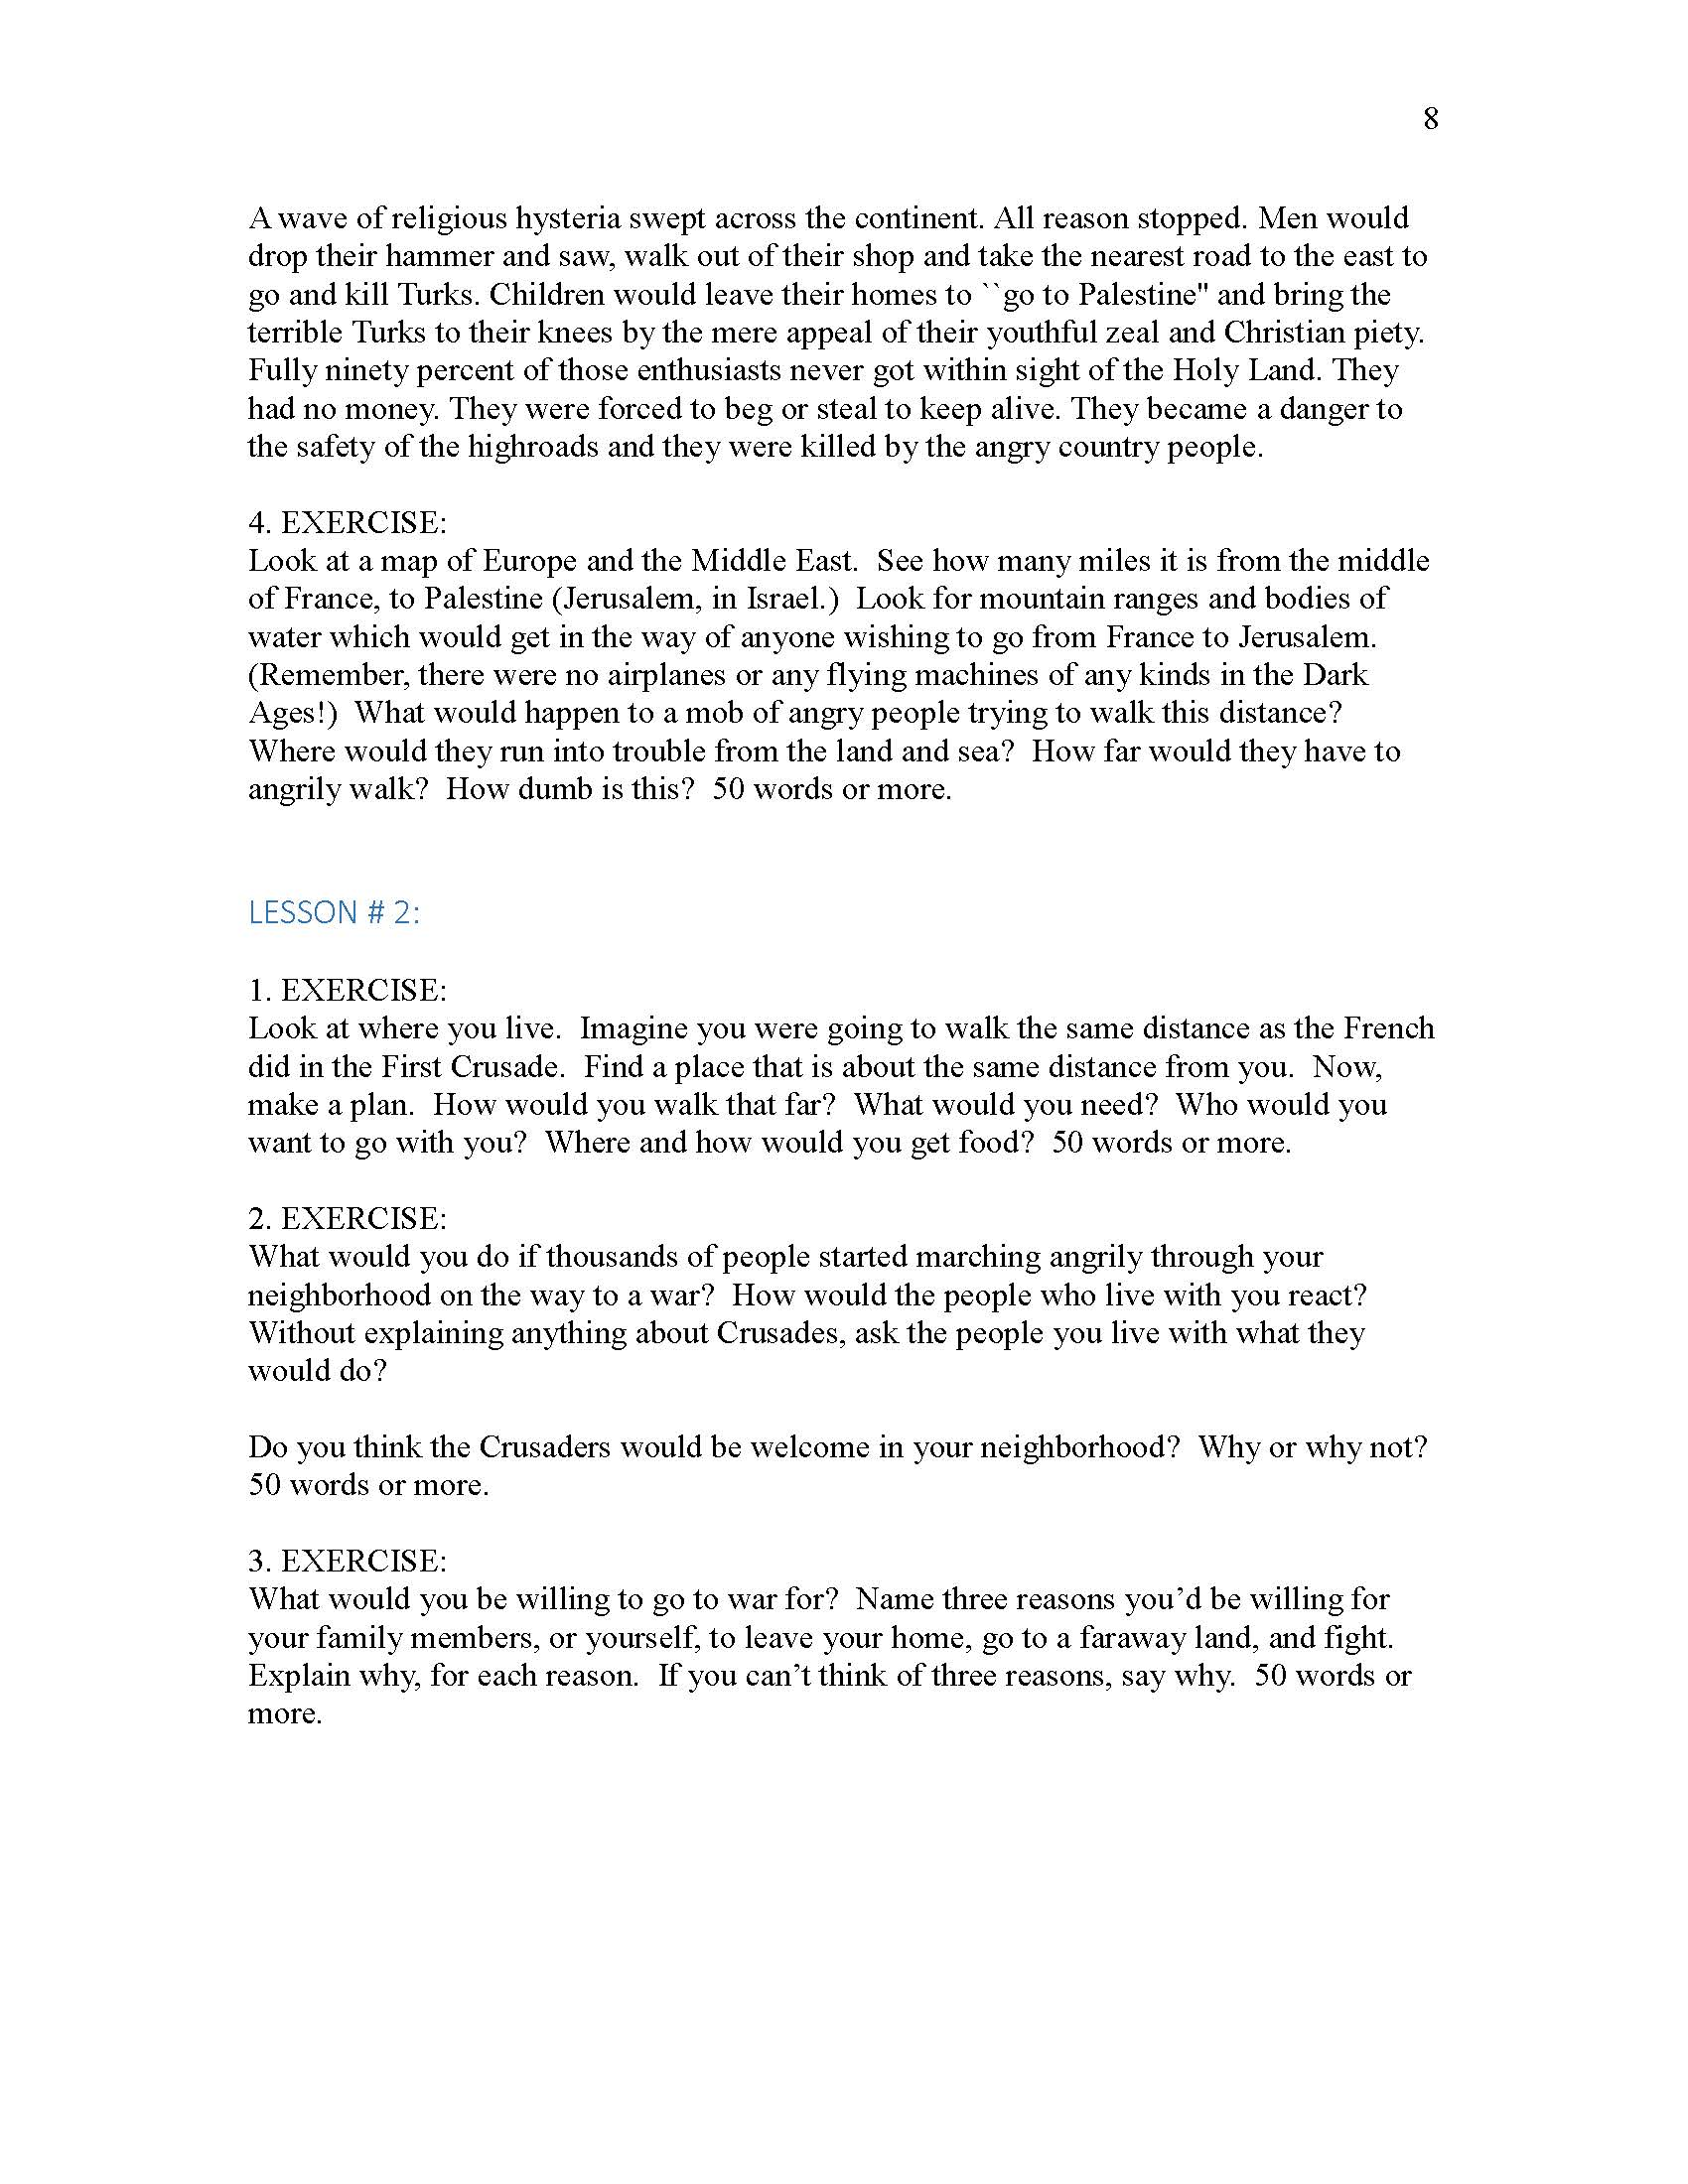 Step 3 History 10 - Life In The Dark Ages_Page_09.jpg